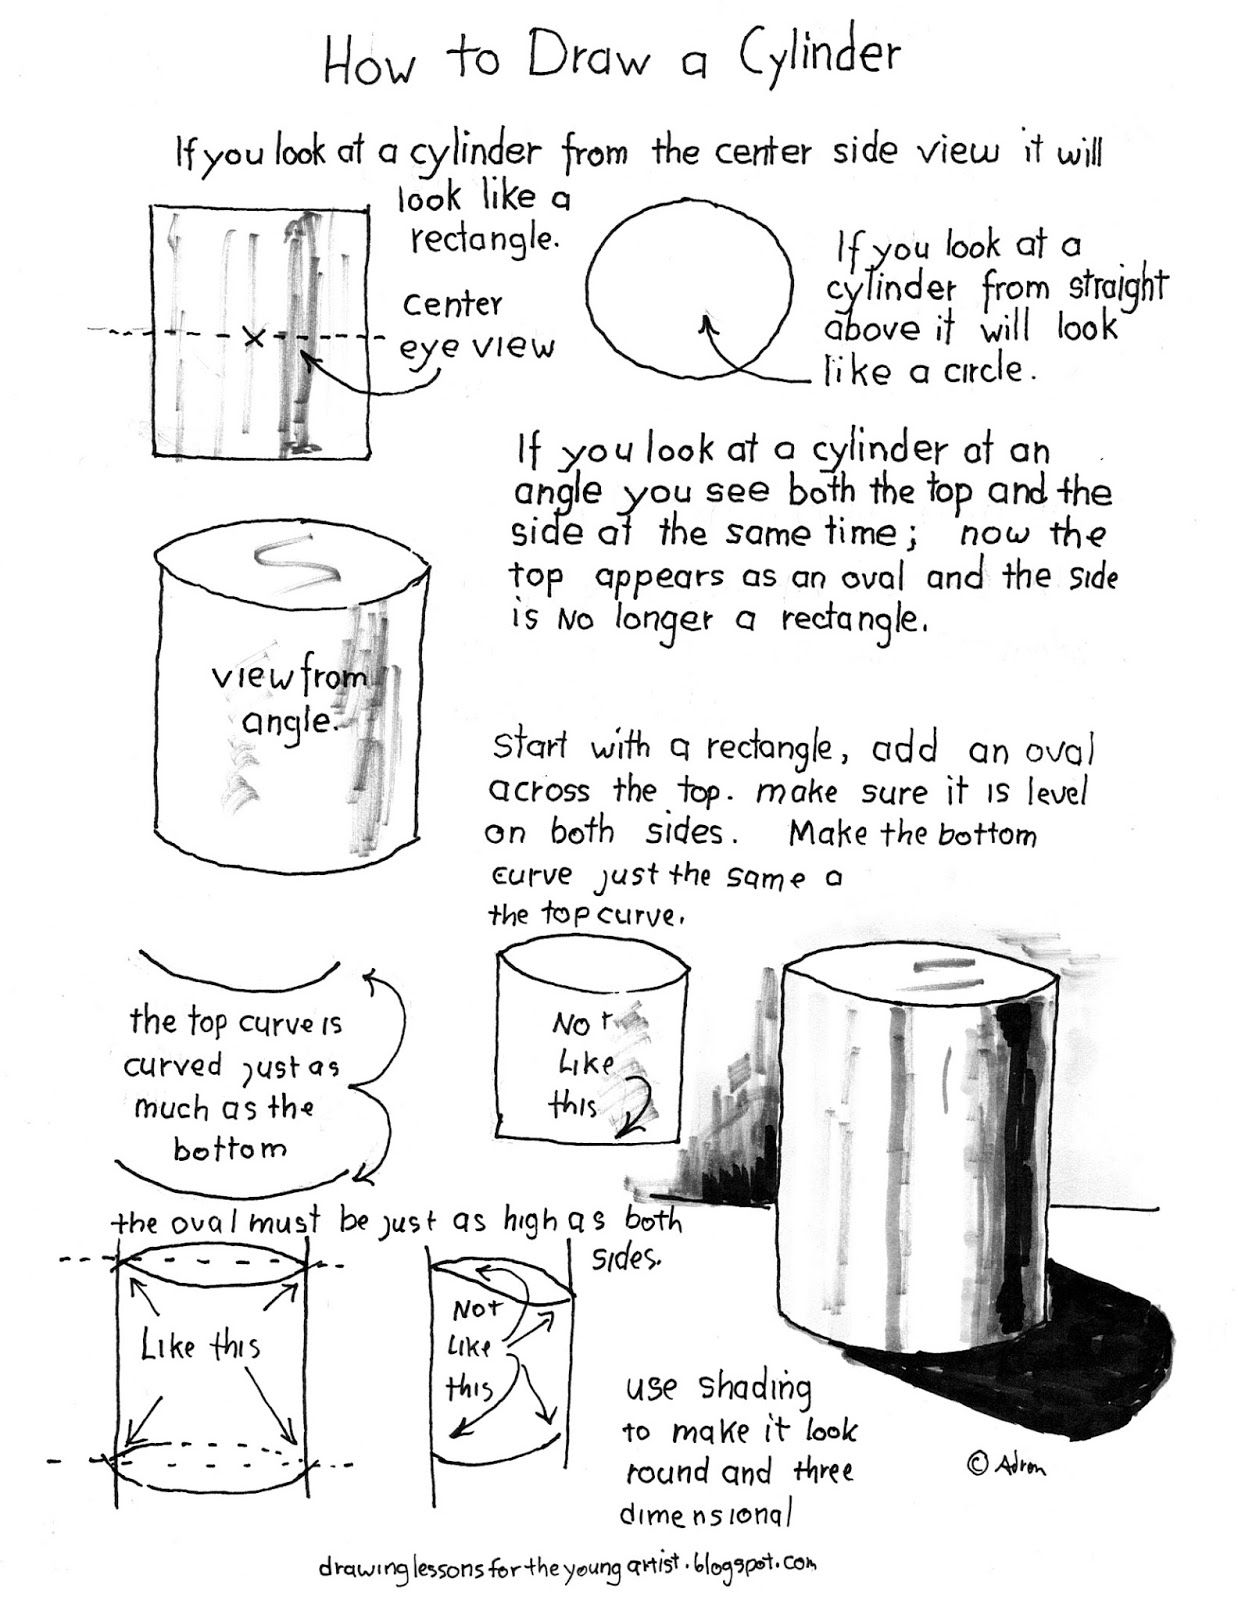 A Simple Printable Lesson On How To Draw A Cylinder With